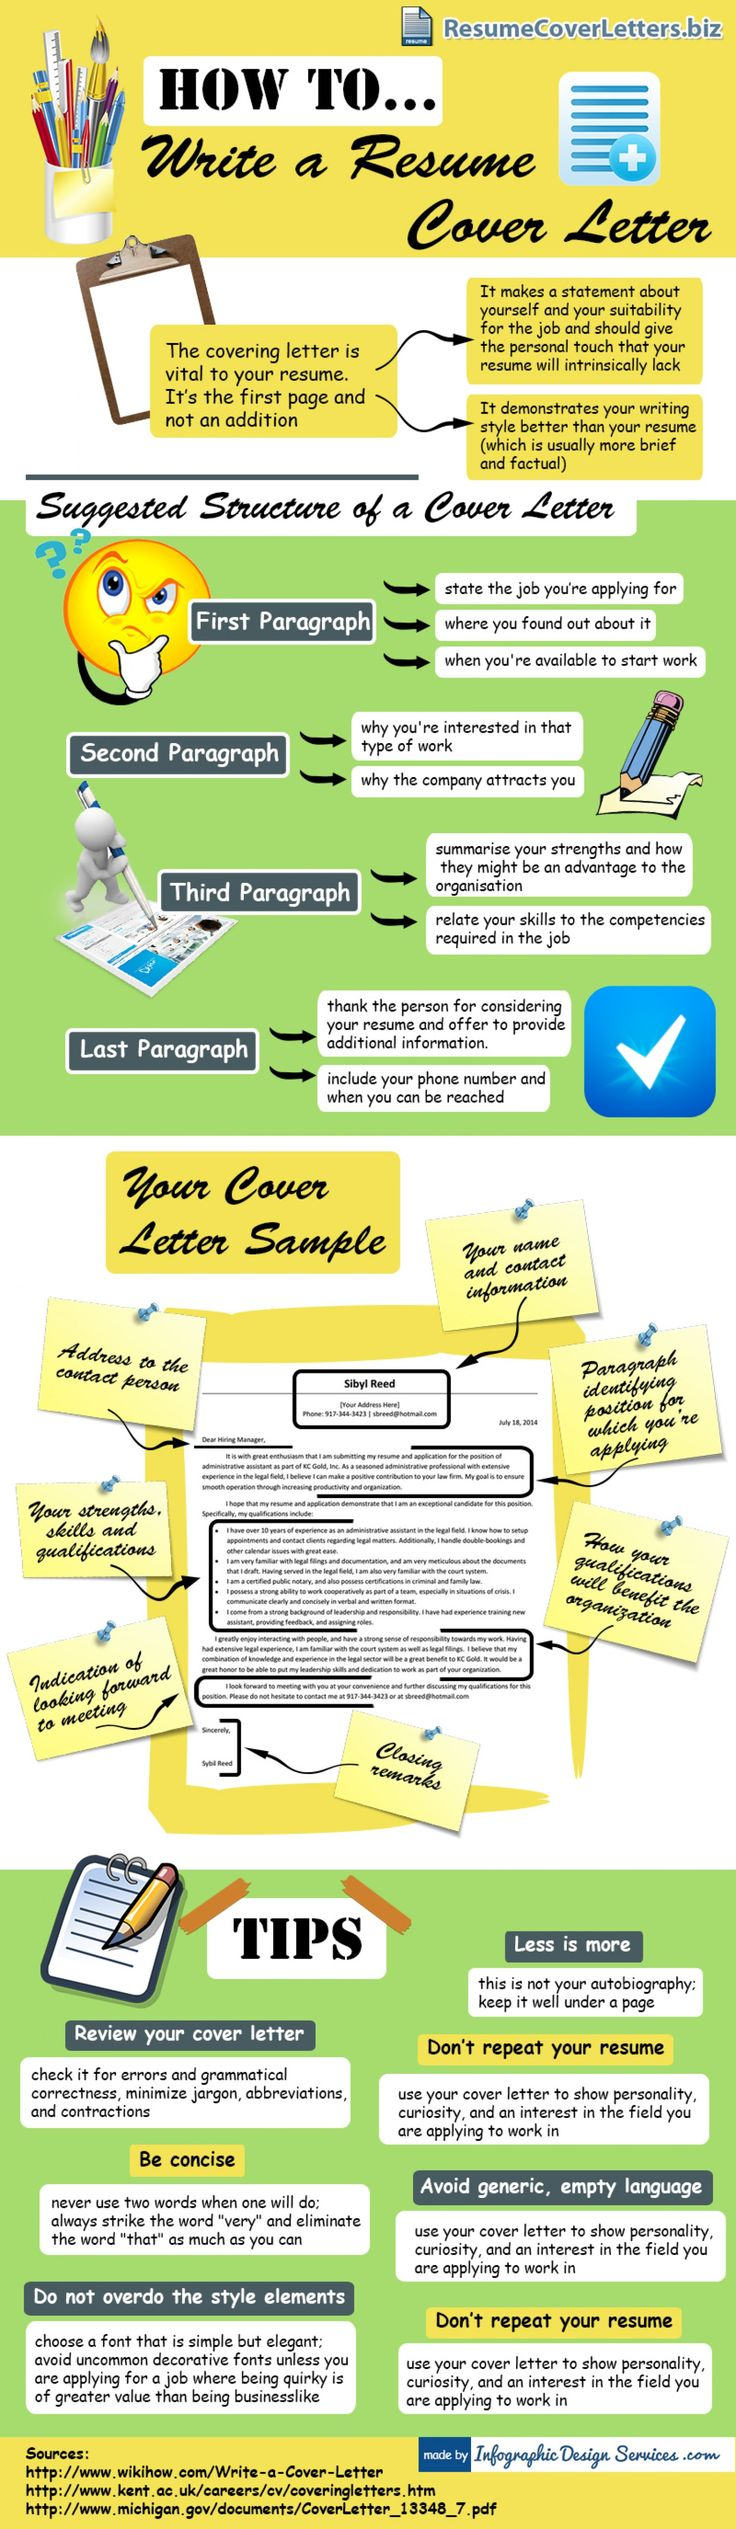 writing a cover letter basics